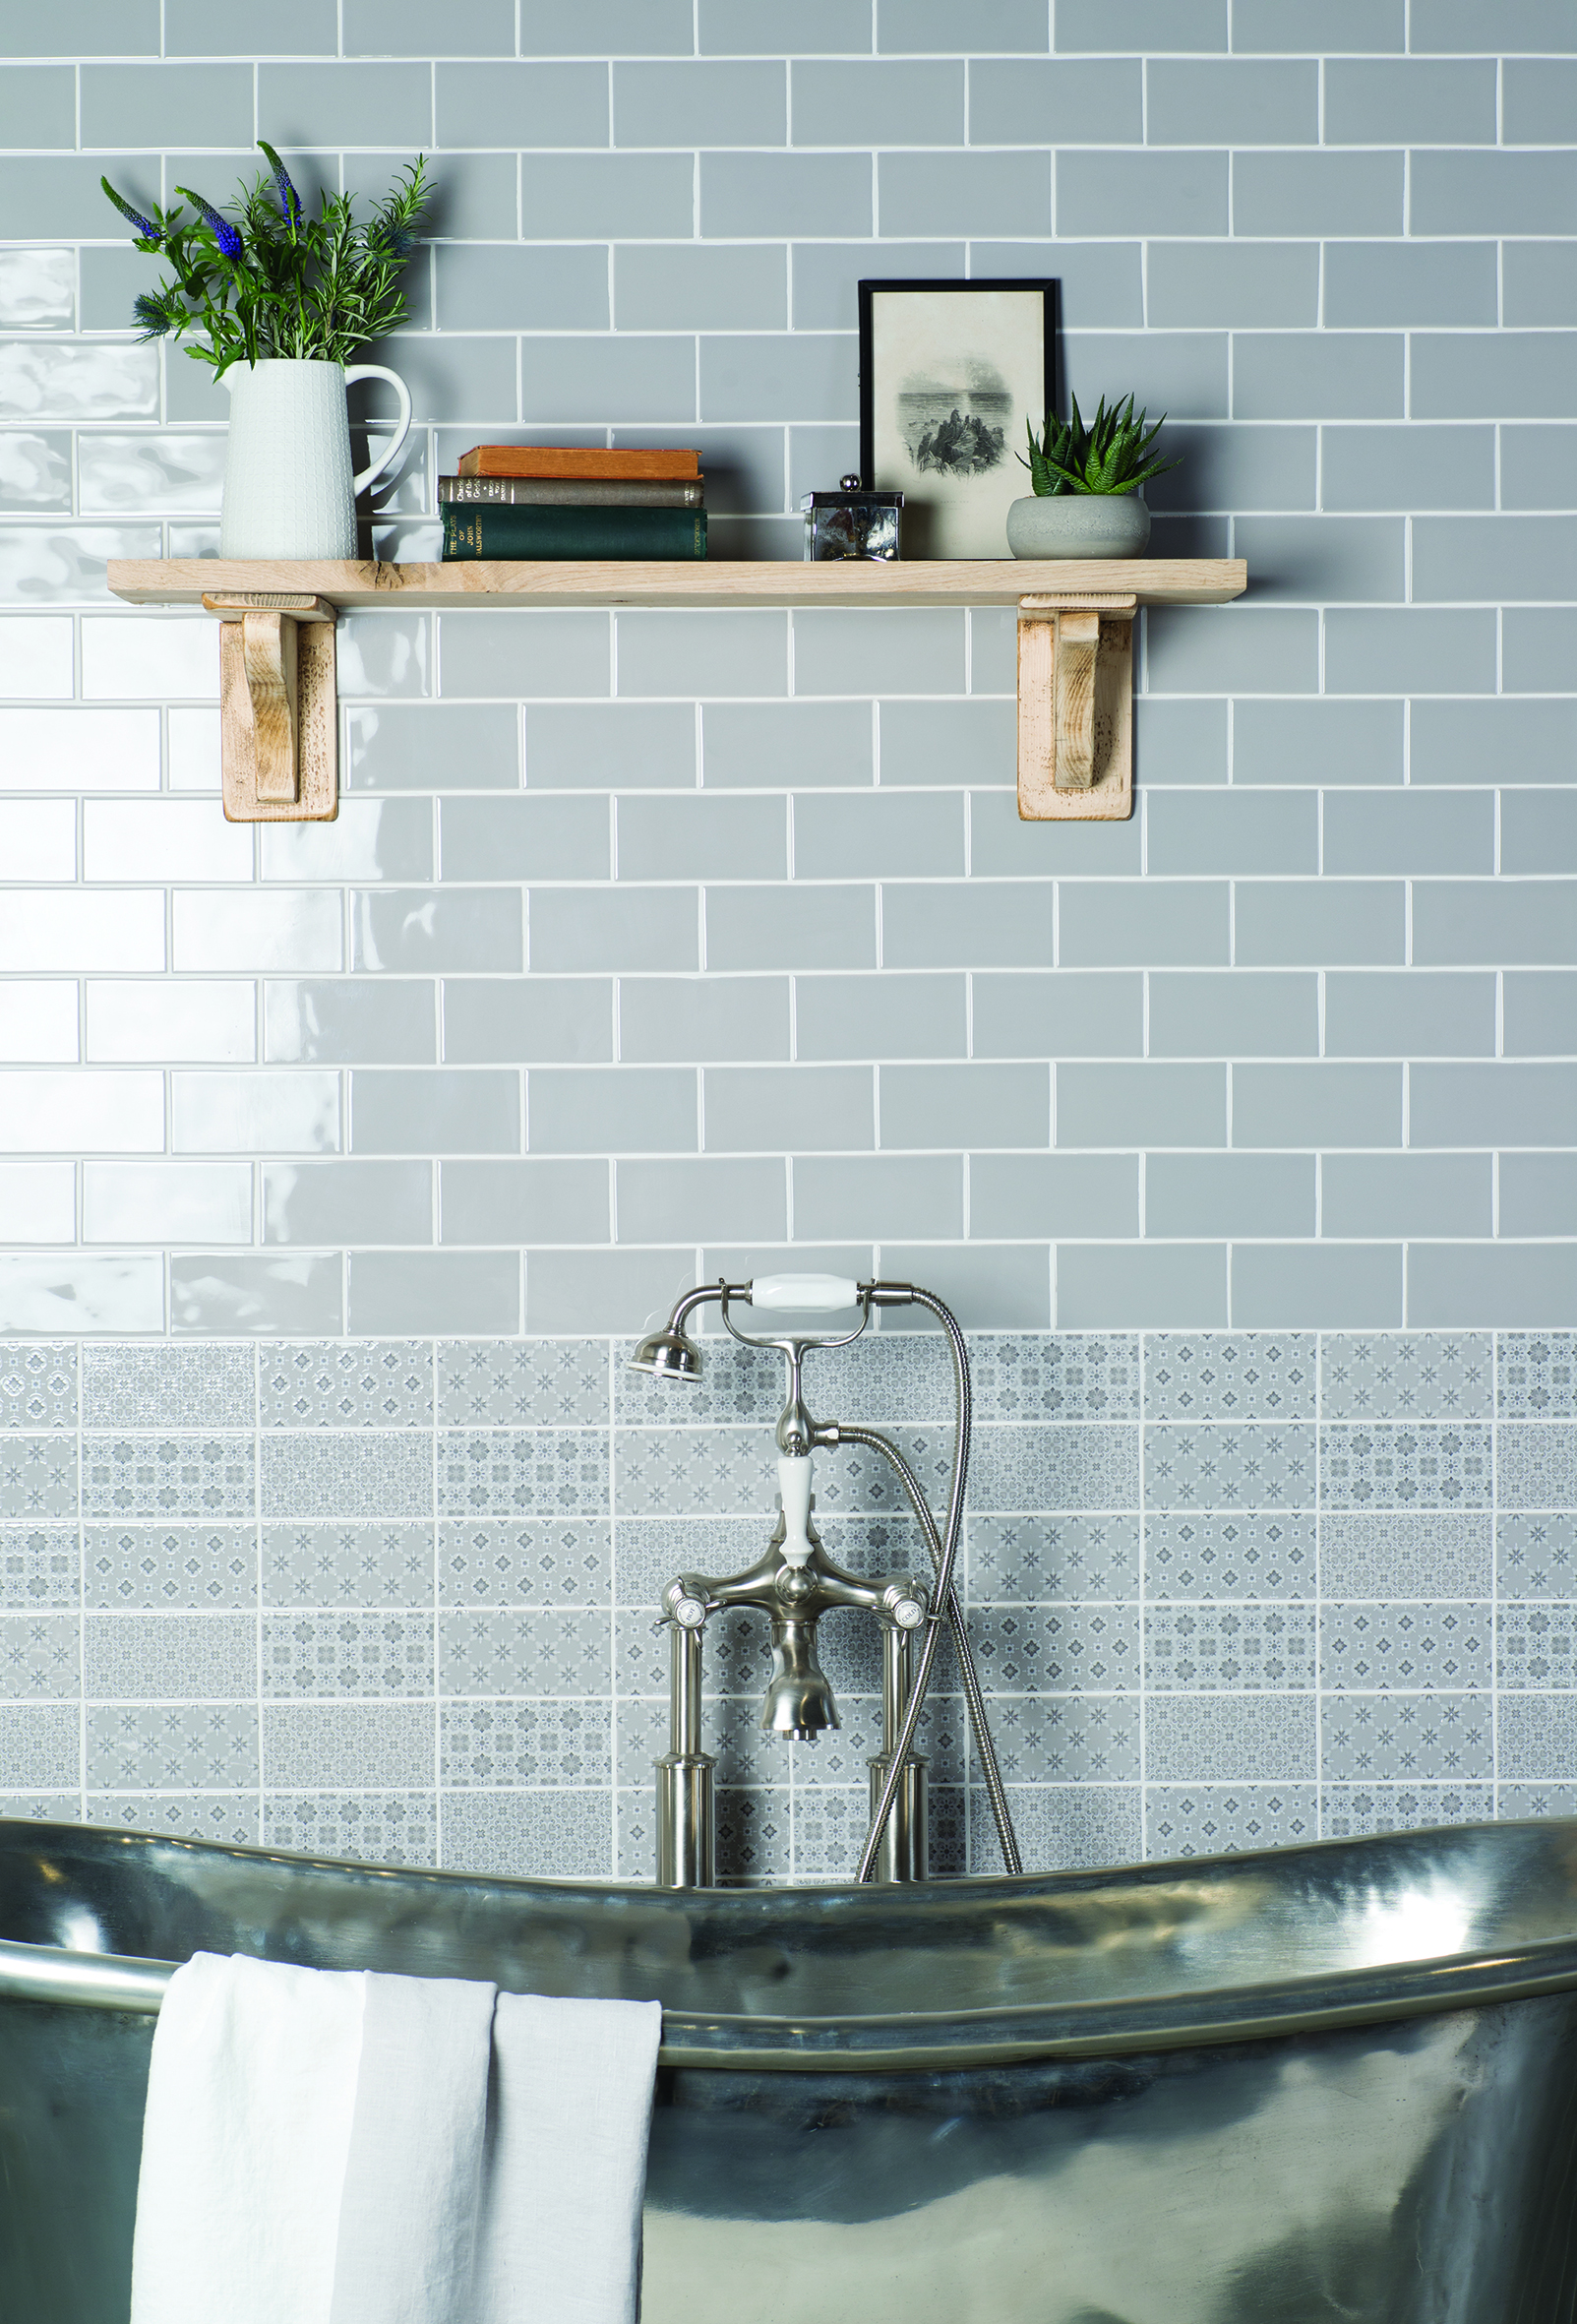 Photo Credit: Original Style - Winchester Tile Co